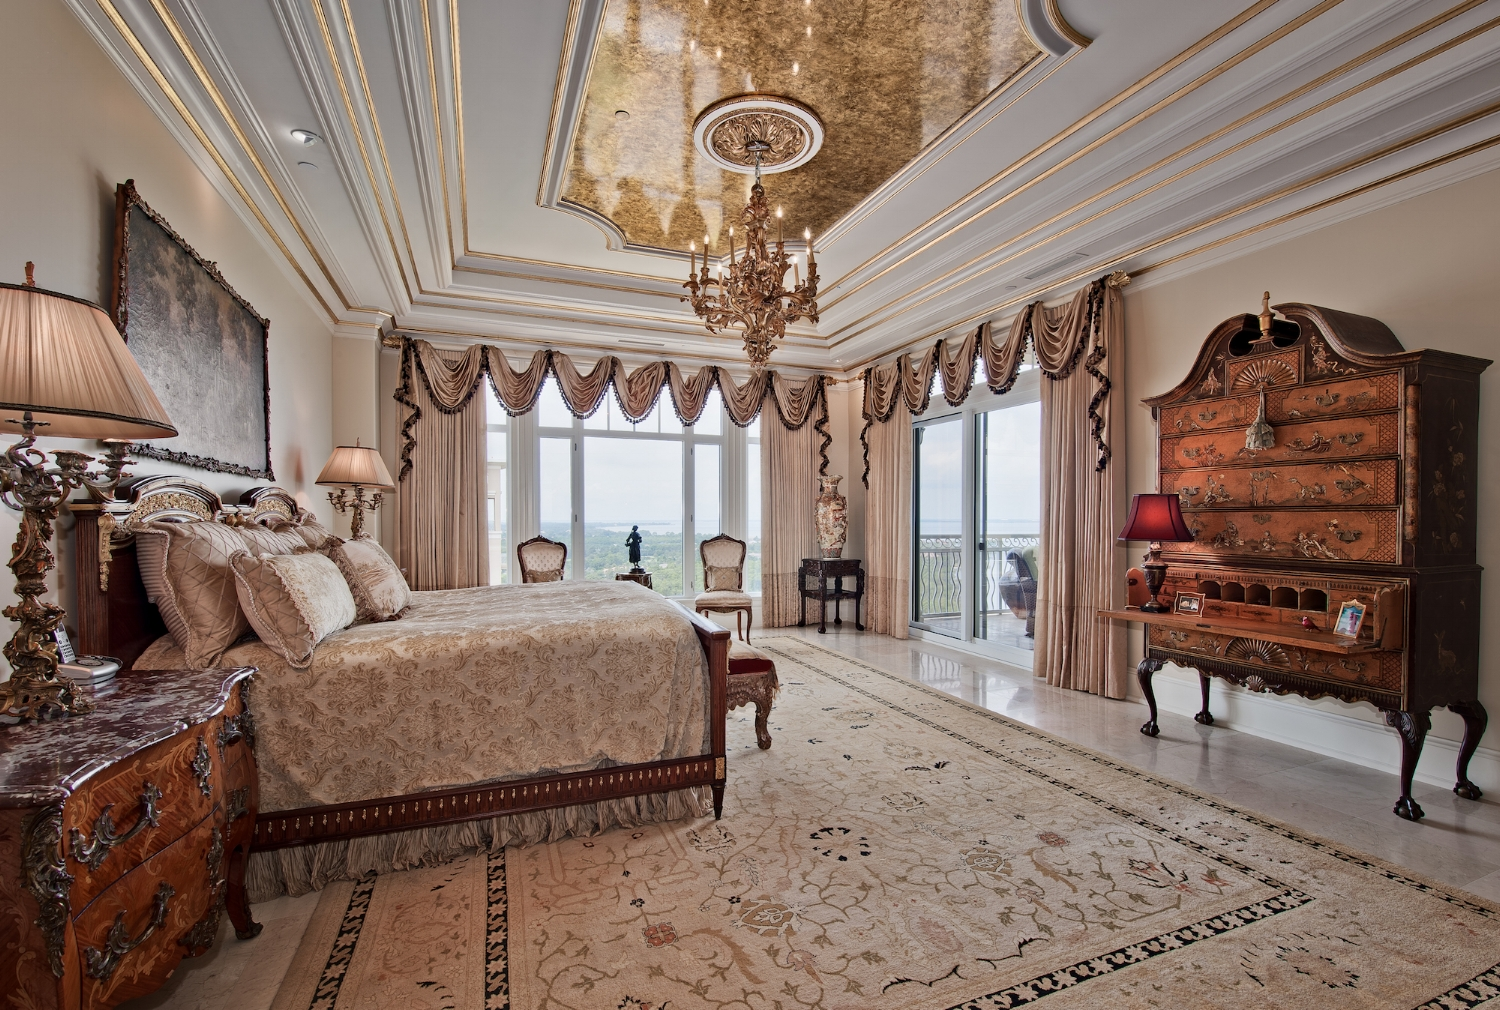 In this master bedroom the crown molding was gilded in selected areas and antiqued with a glaze. The ceiling was gilded and decoratively glazed.